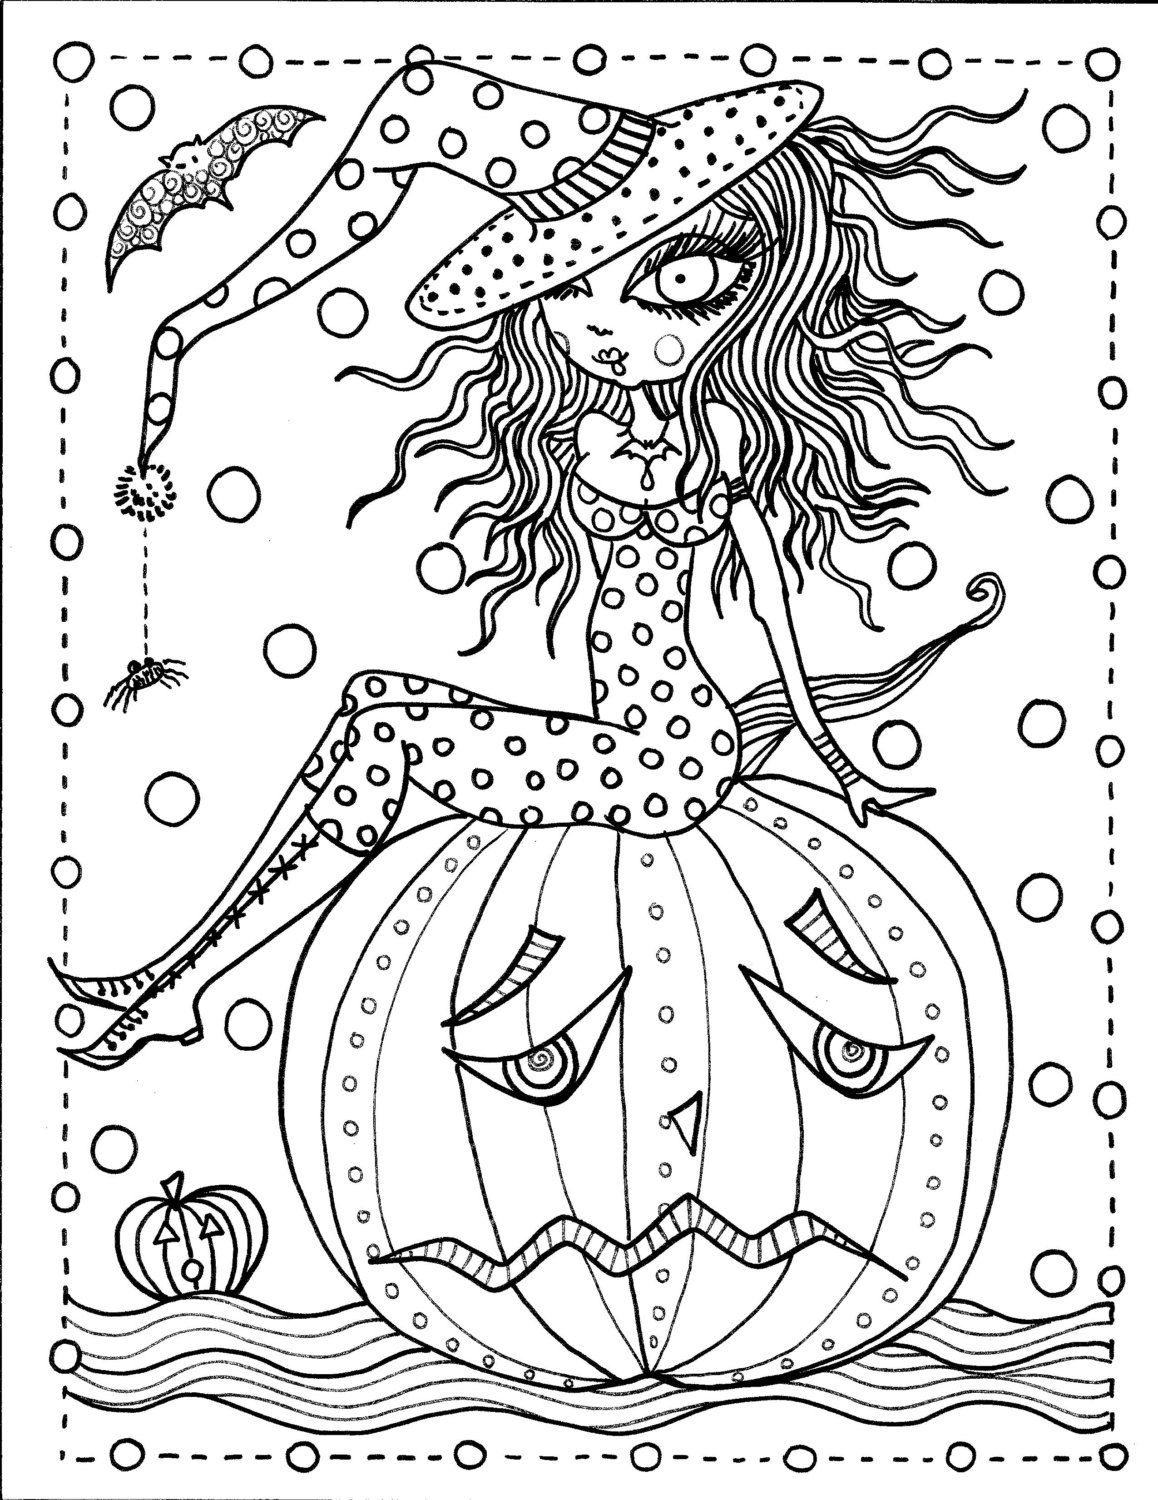 Halloween Coloring Book Full of Halloween Coloring Fun be the Artist ...